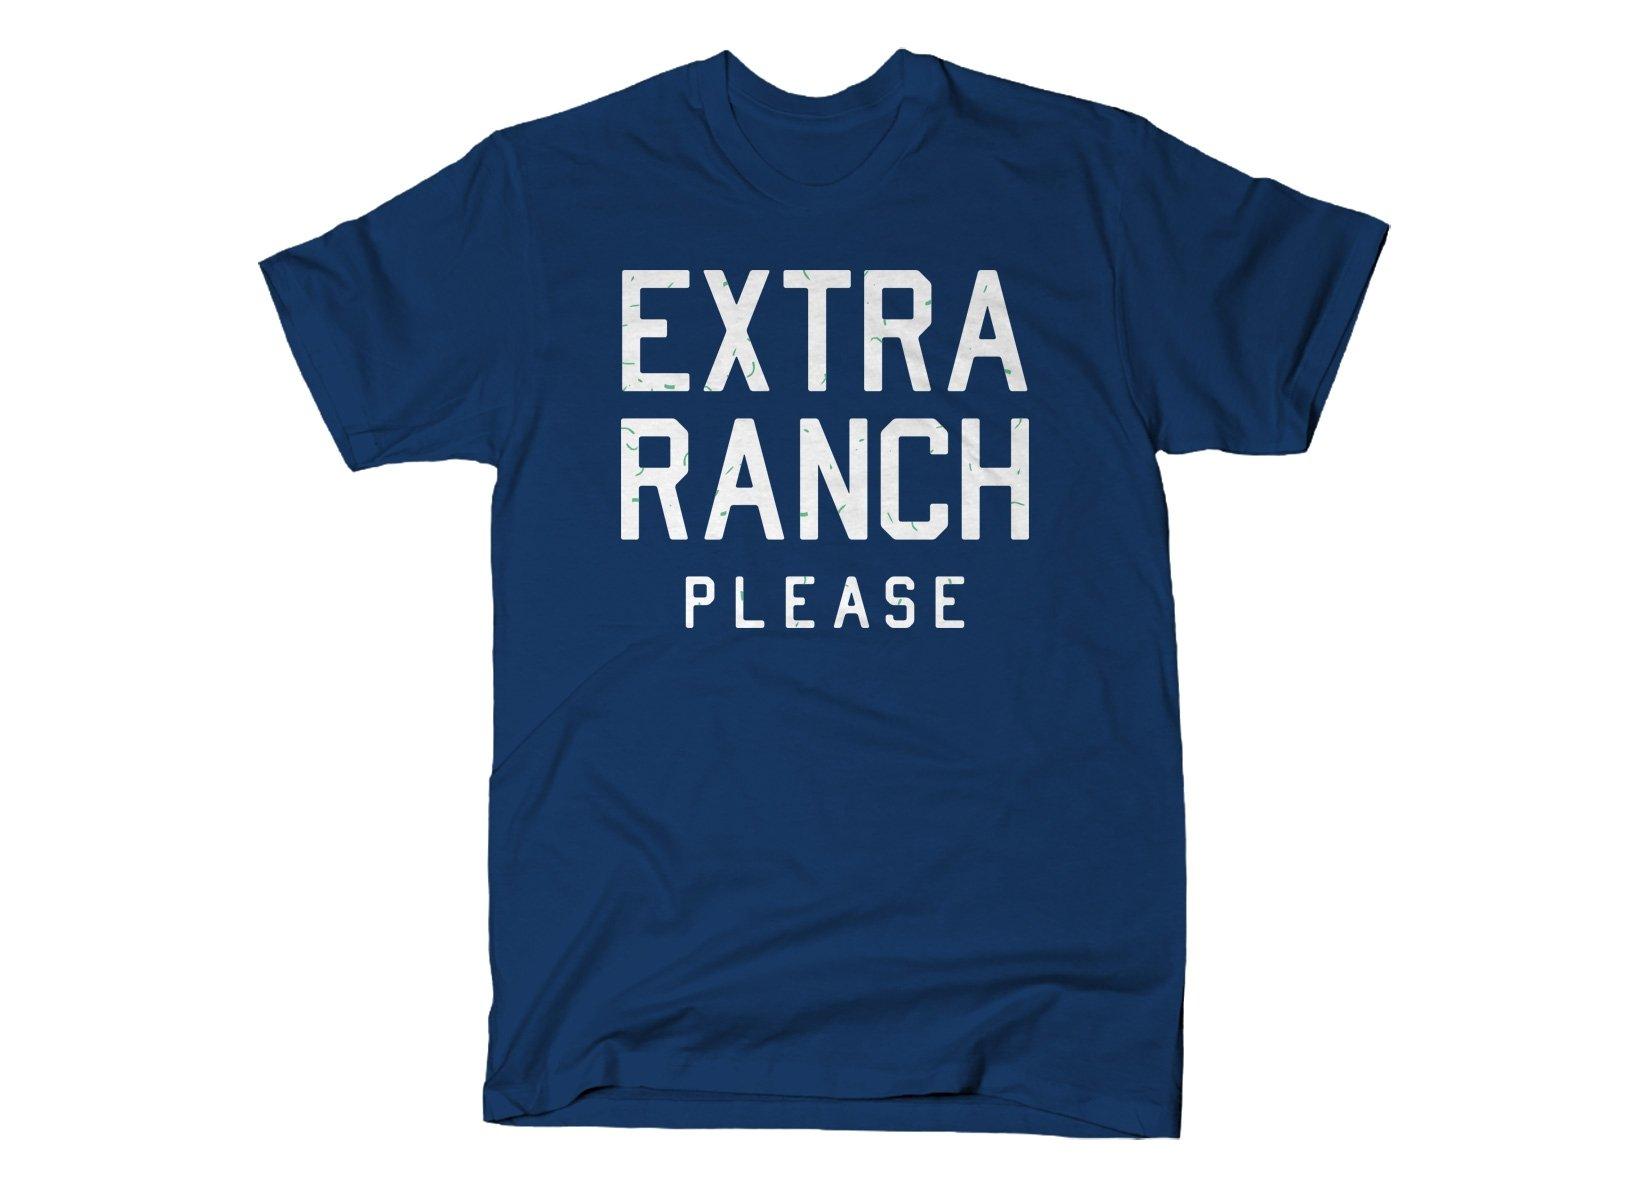 Extra Ranch Please on Mens T-Shirt